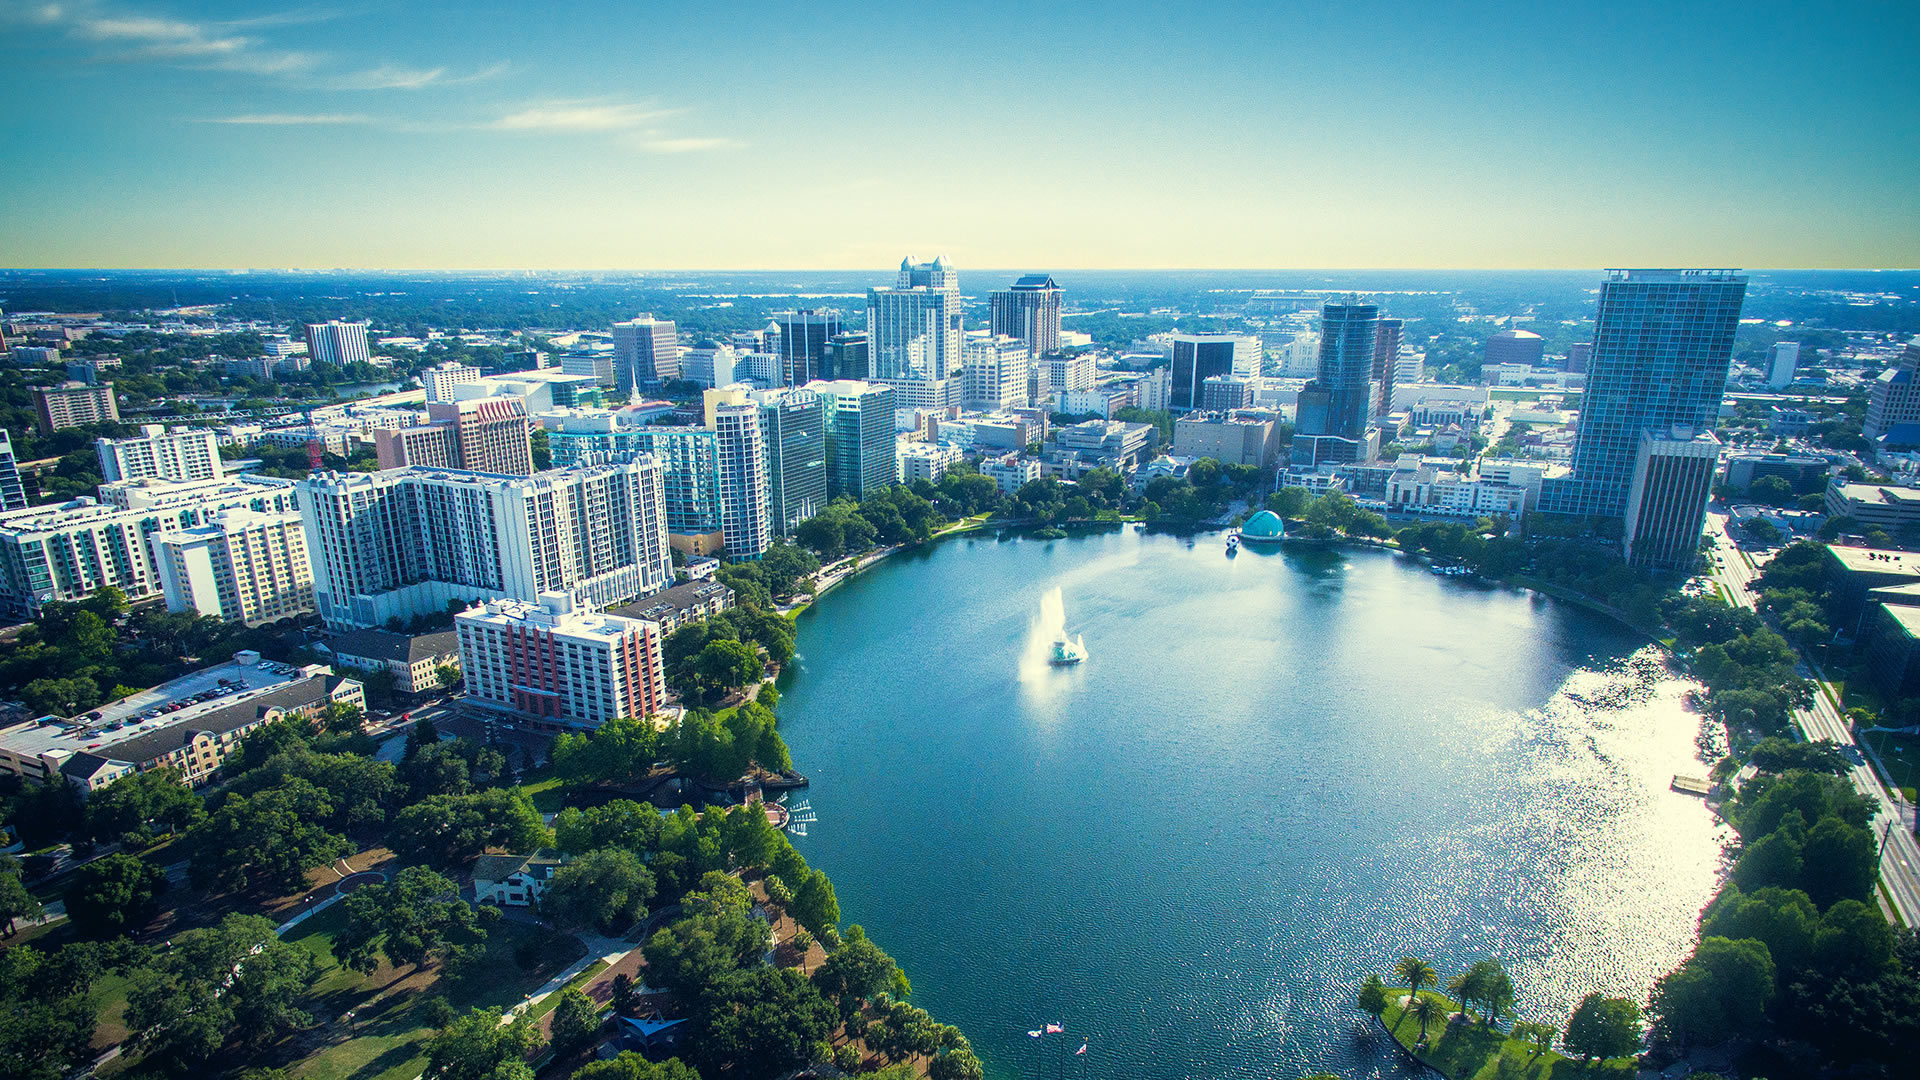 How did Orlando, Florida become Theme Park Capital of the World?